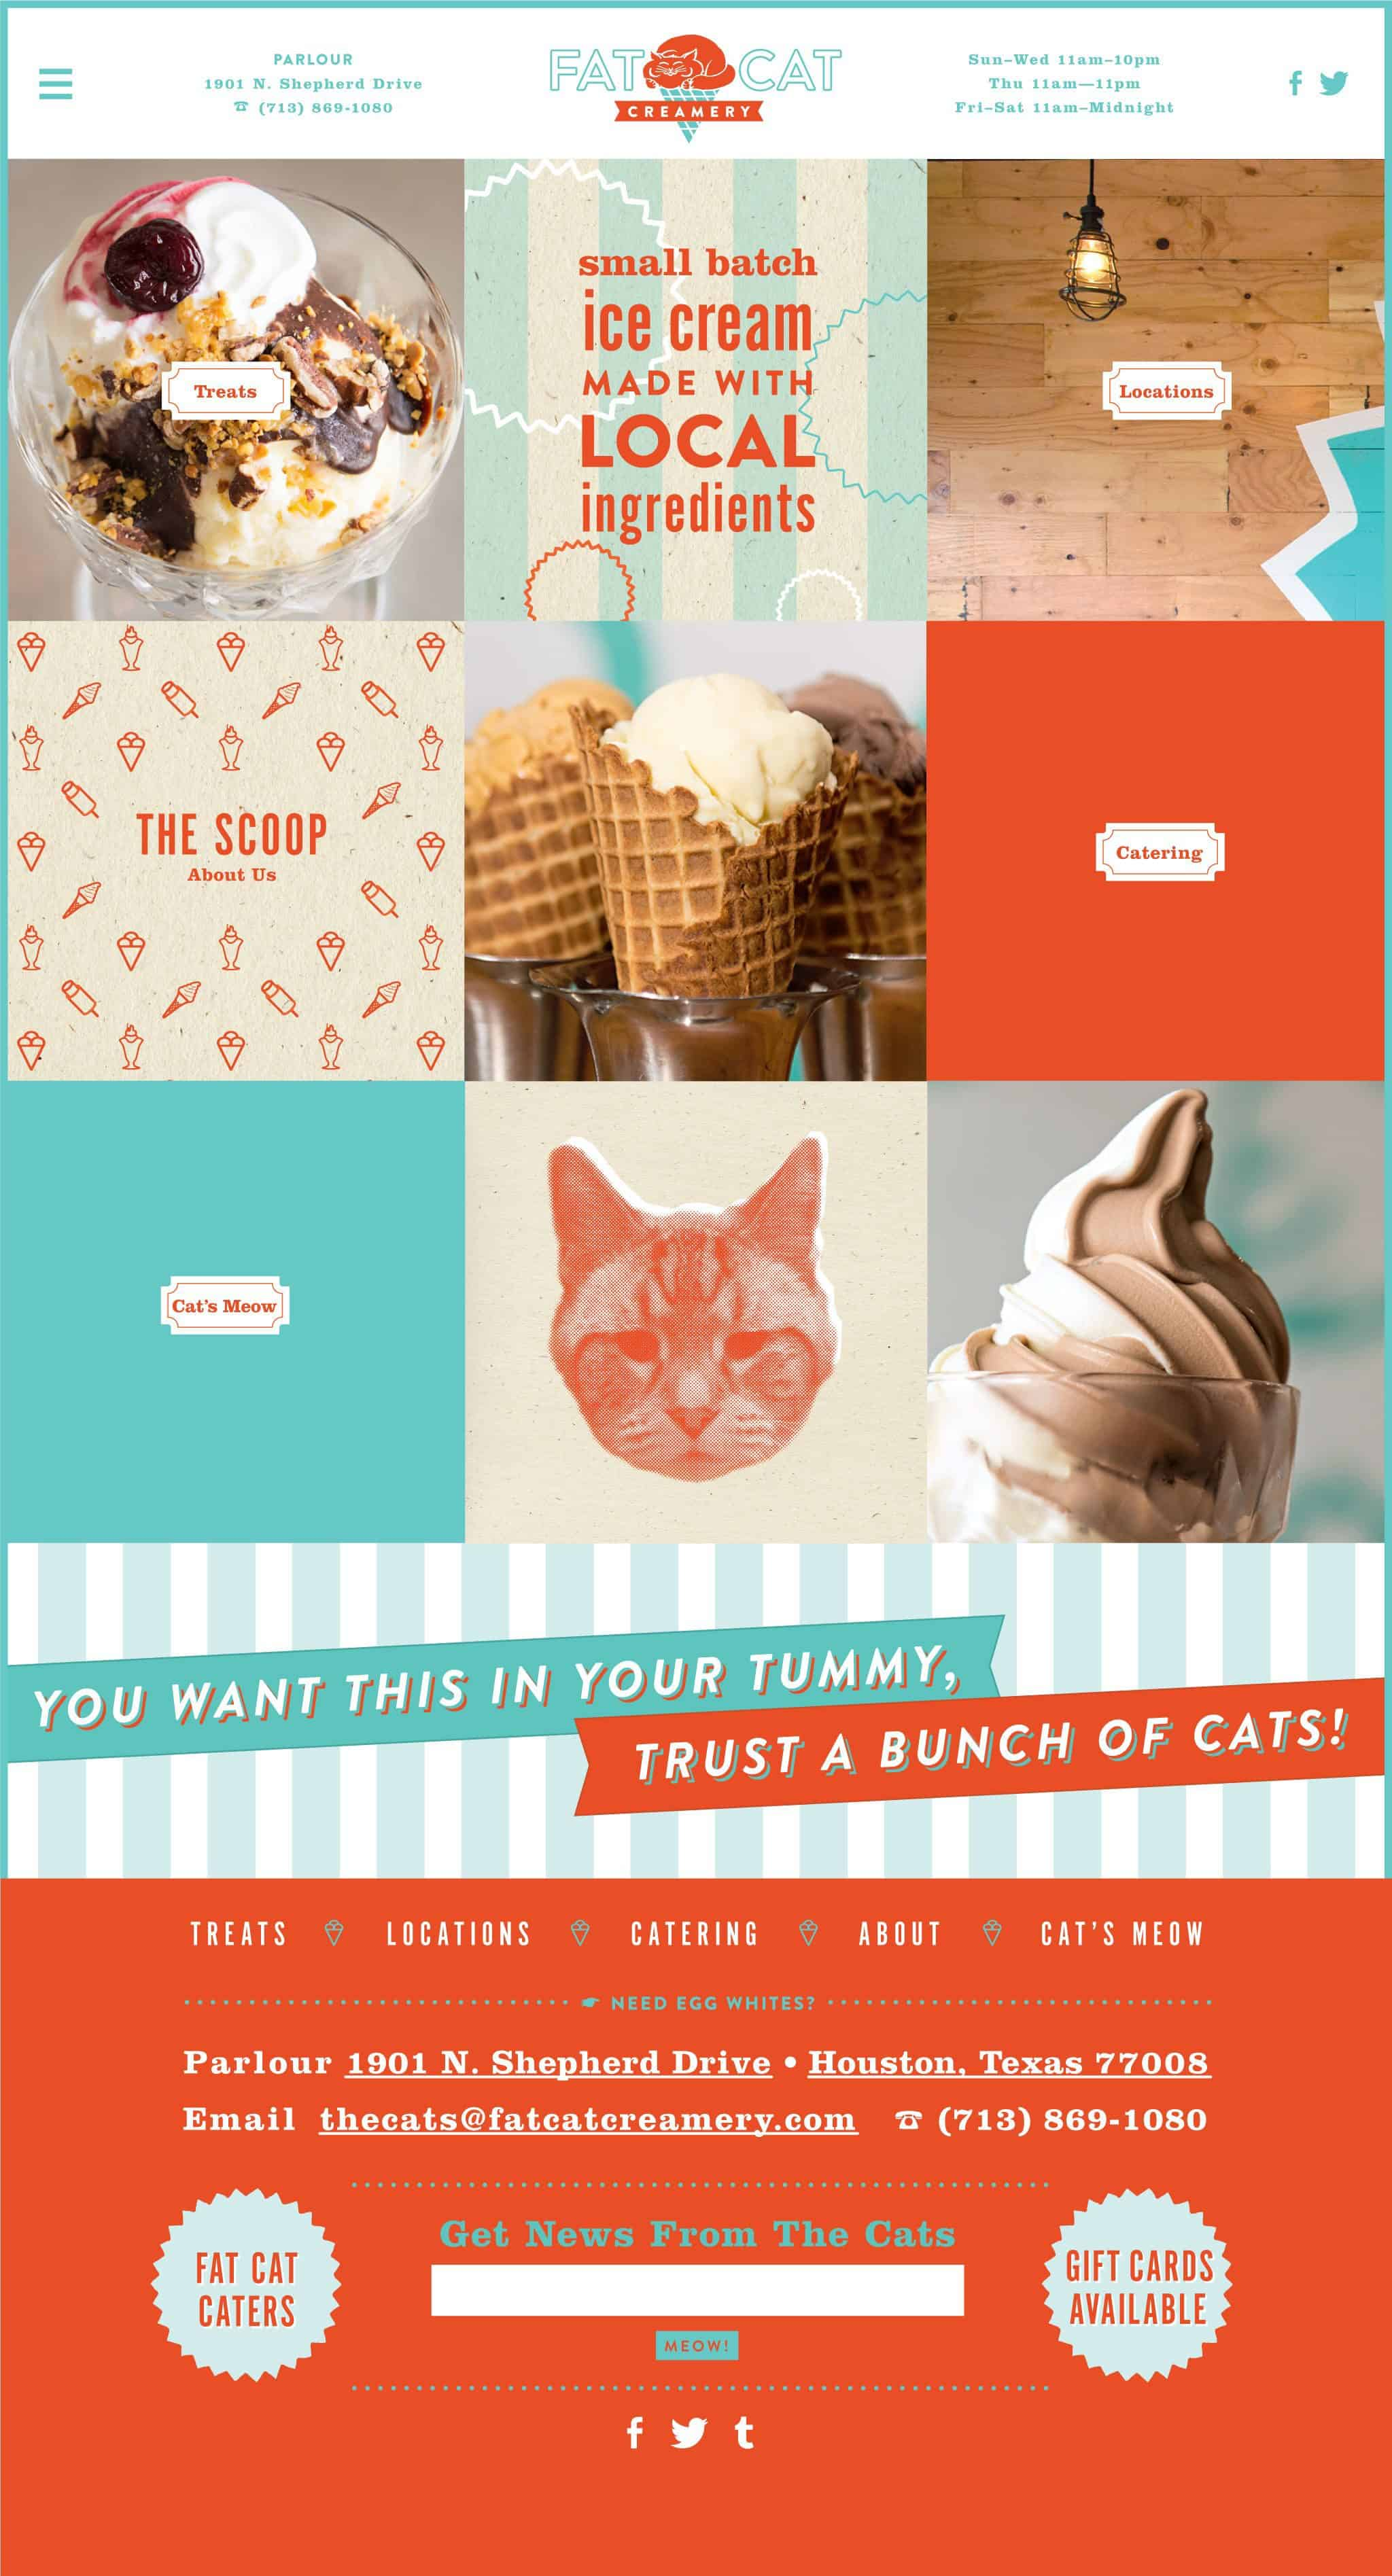 Brand development, website, packaging, graphic design, and space design for Fat Cat Creamery, Houston, Texas | Field of Study: A Design & Branding Consultancy.